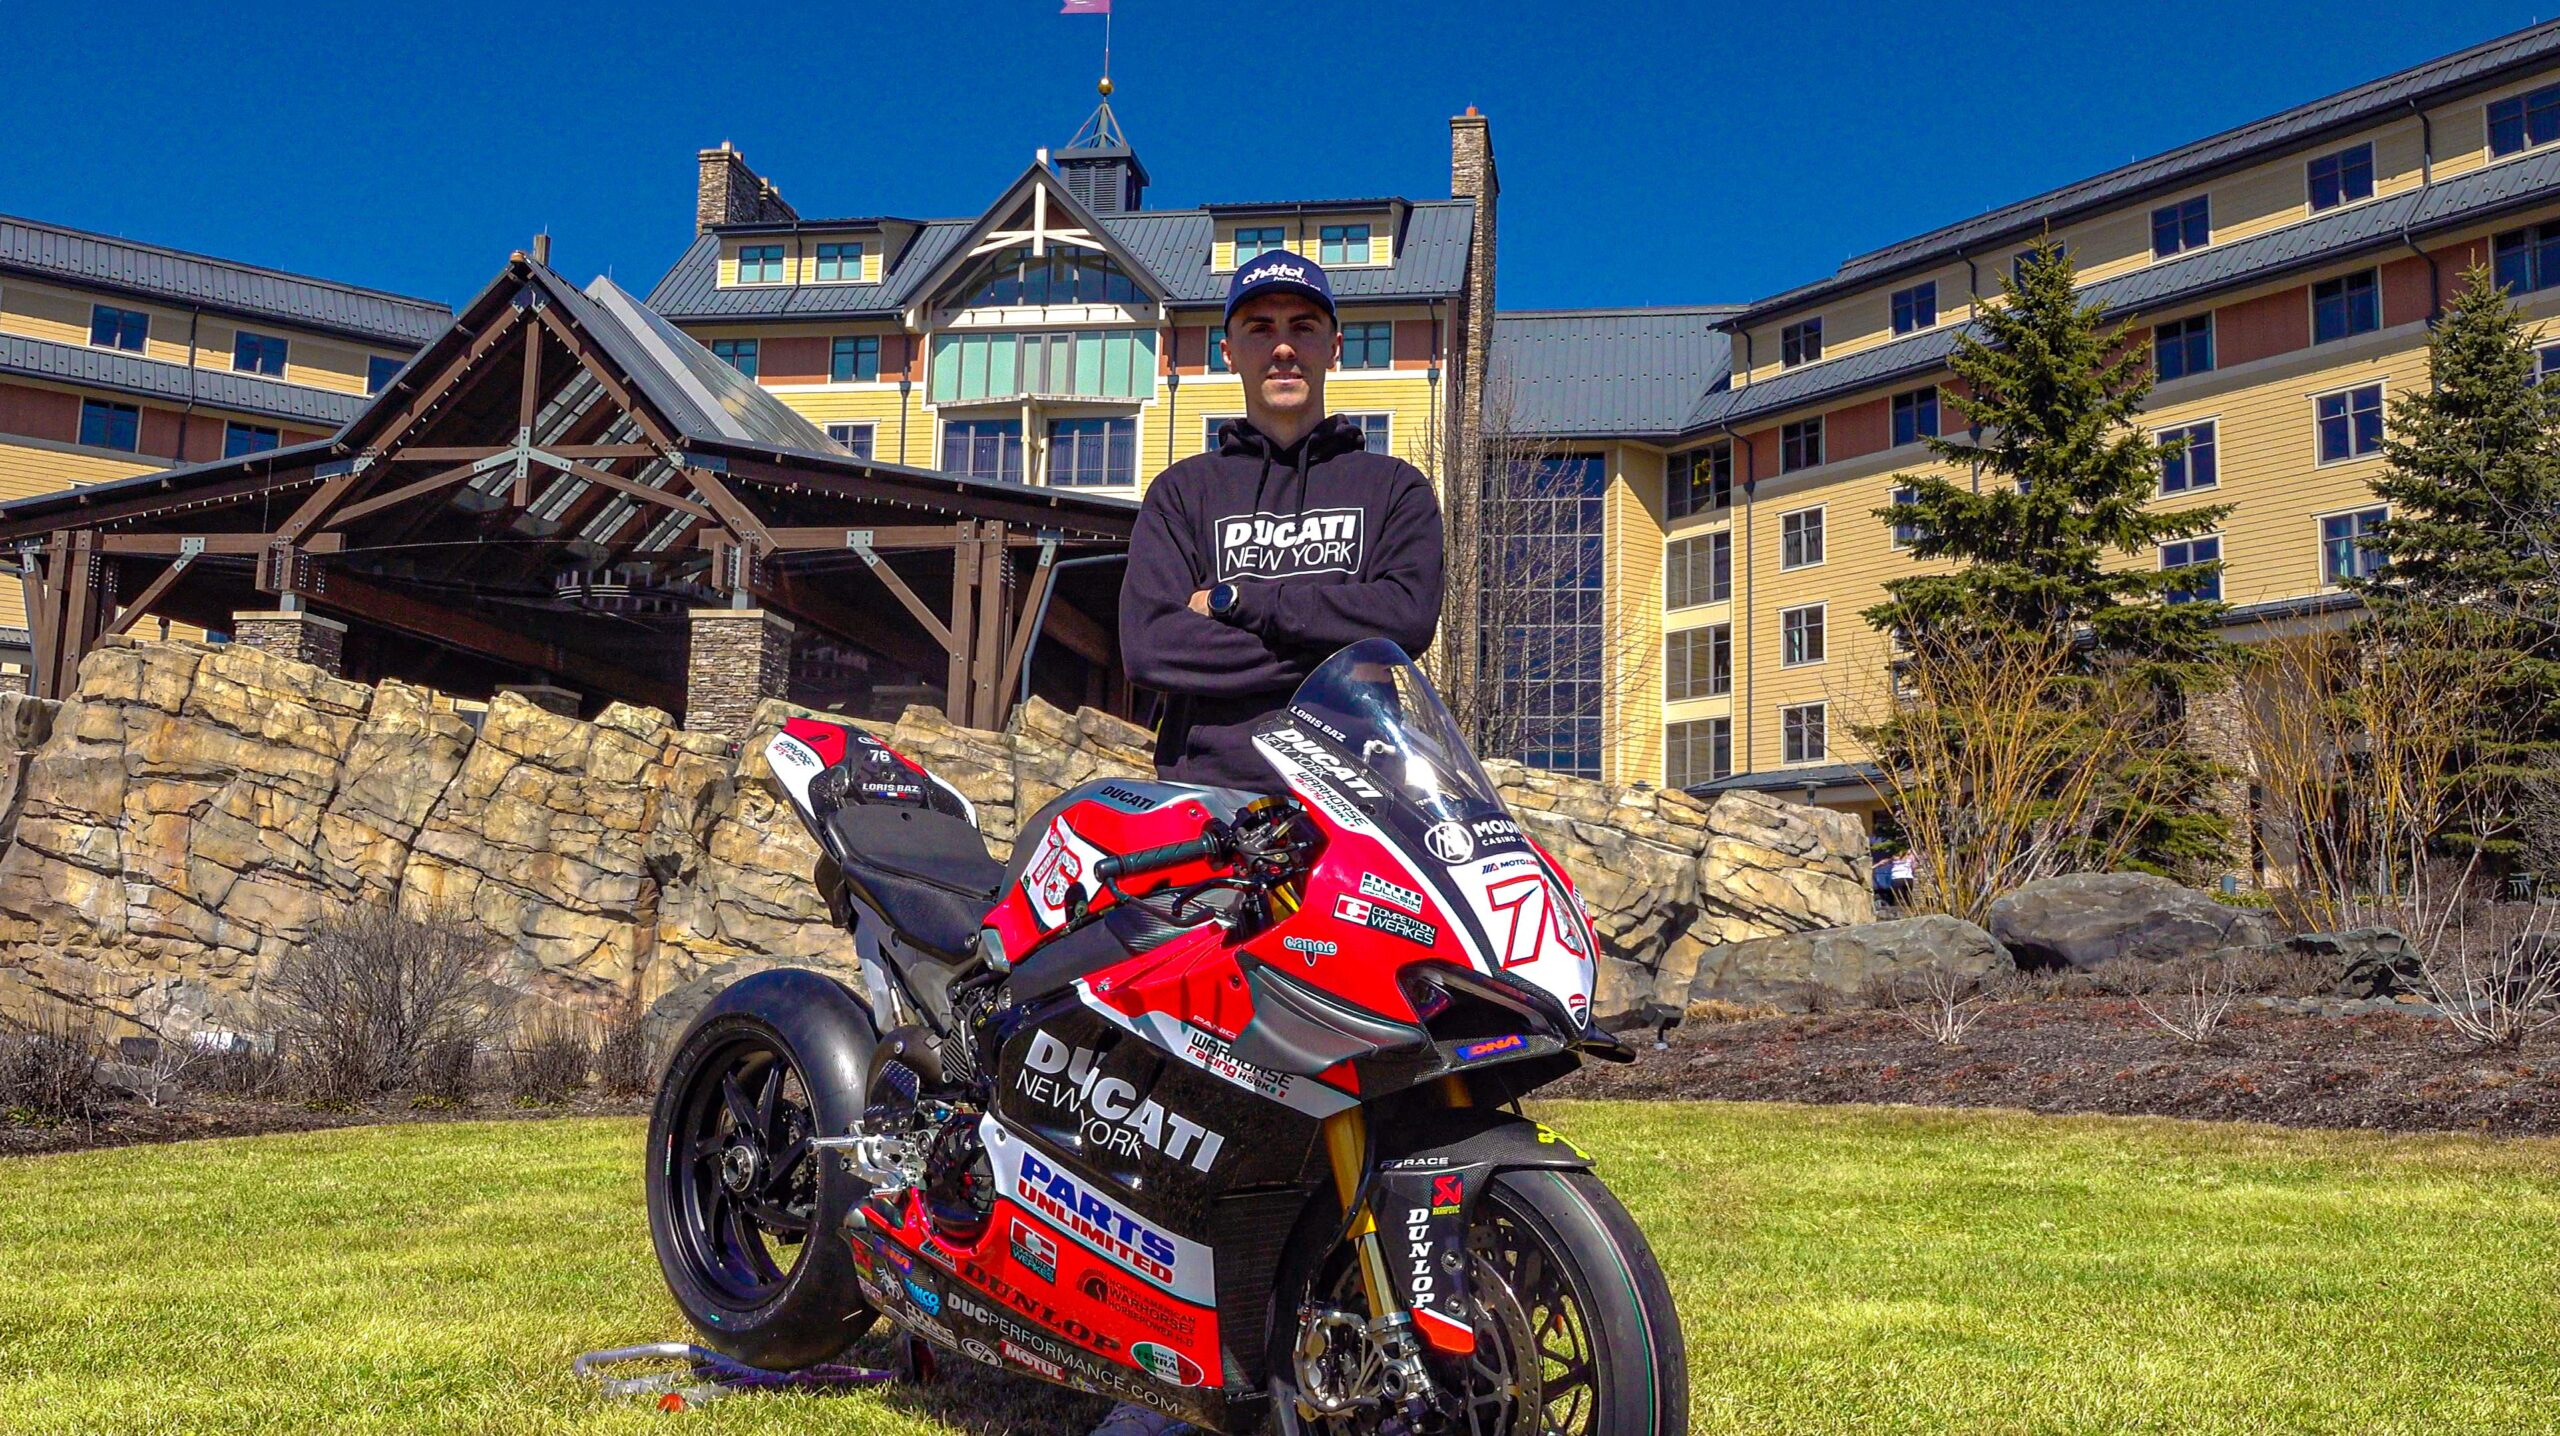 Warhorse HSBK Racing Ducati New York Confirms Parts Unlimited and Mount Airy Casino Resort as Key Sponsors